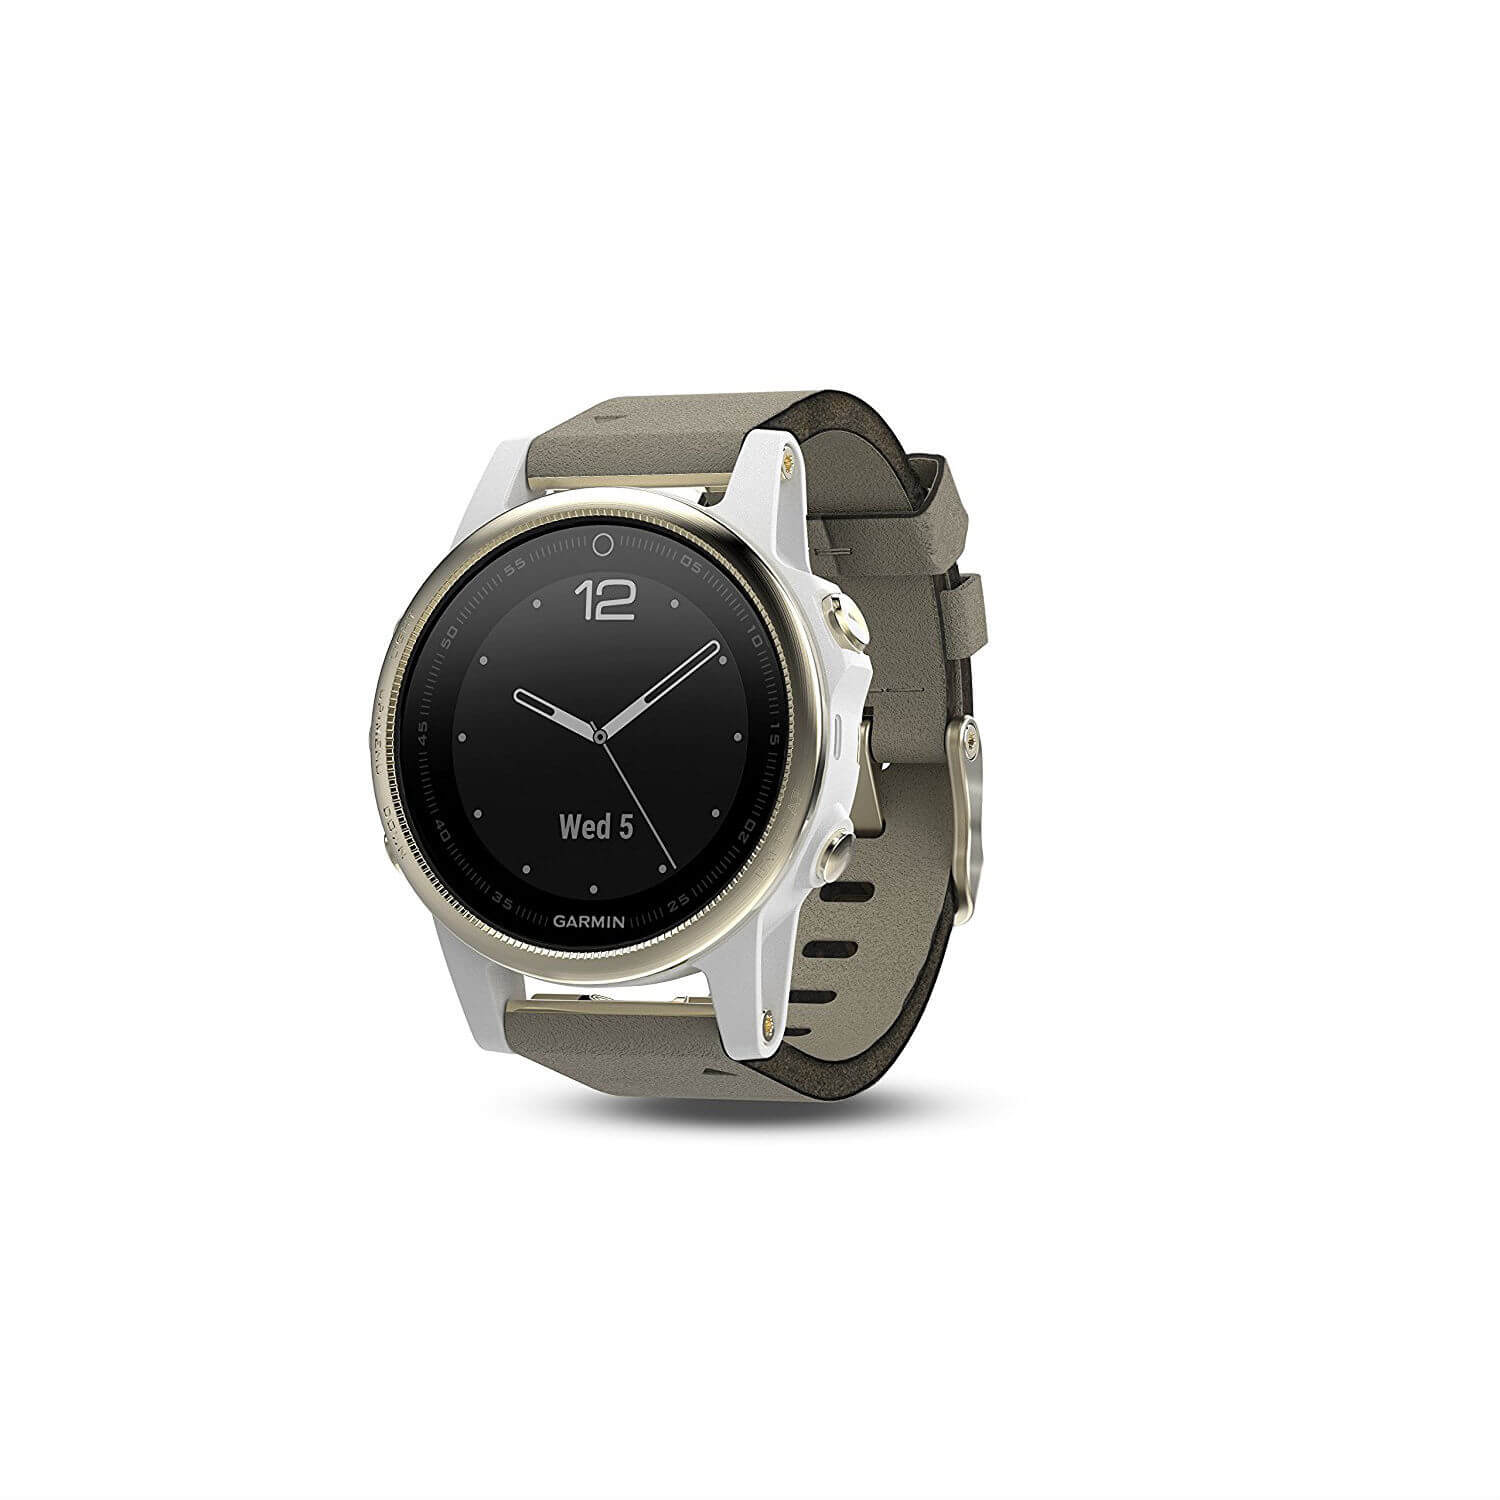 Garmin Fenix 5S Sapphire - Multisport GPS Watch for Fitness, Adventure and Style (champagne with gray suede band)